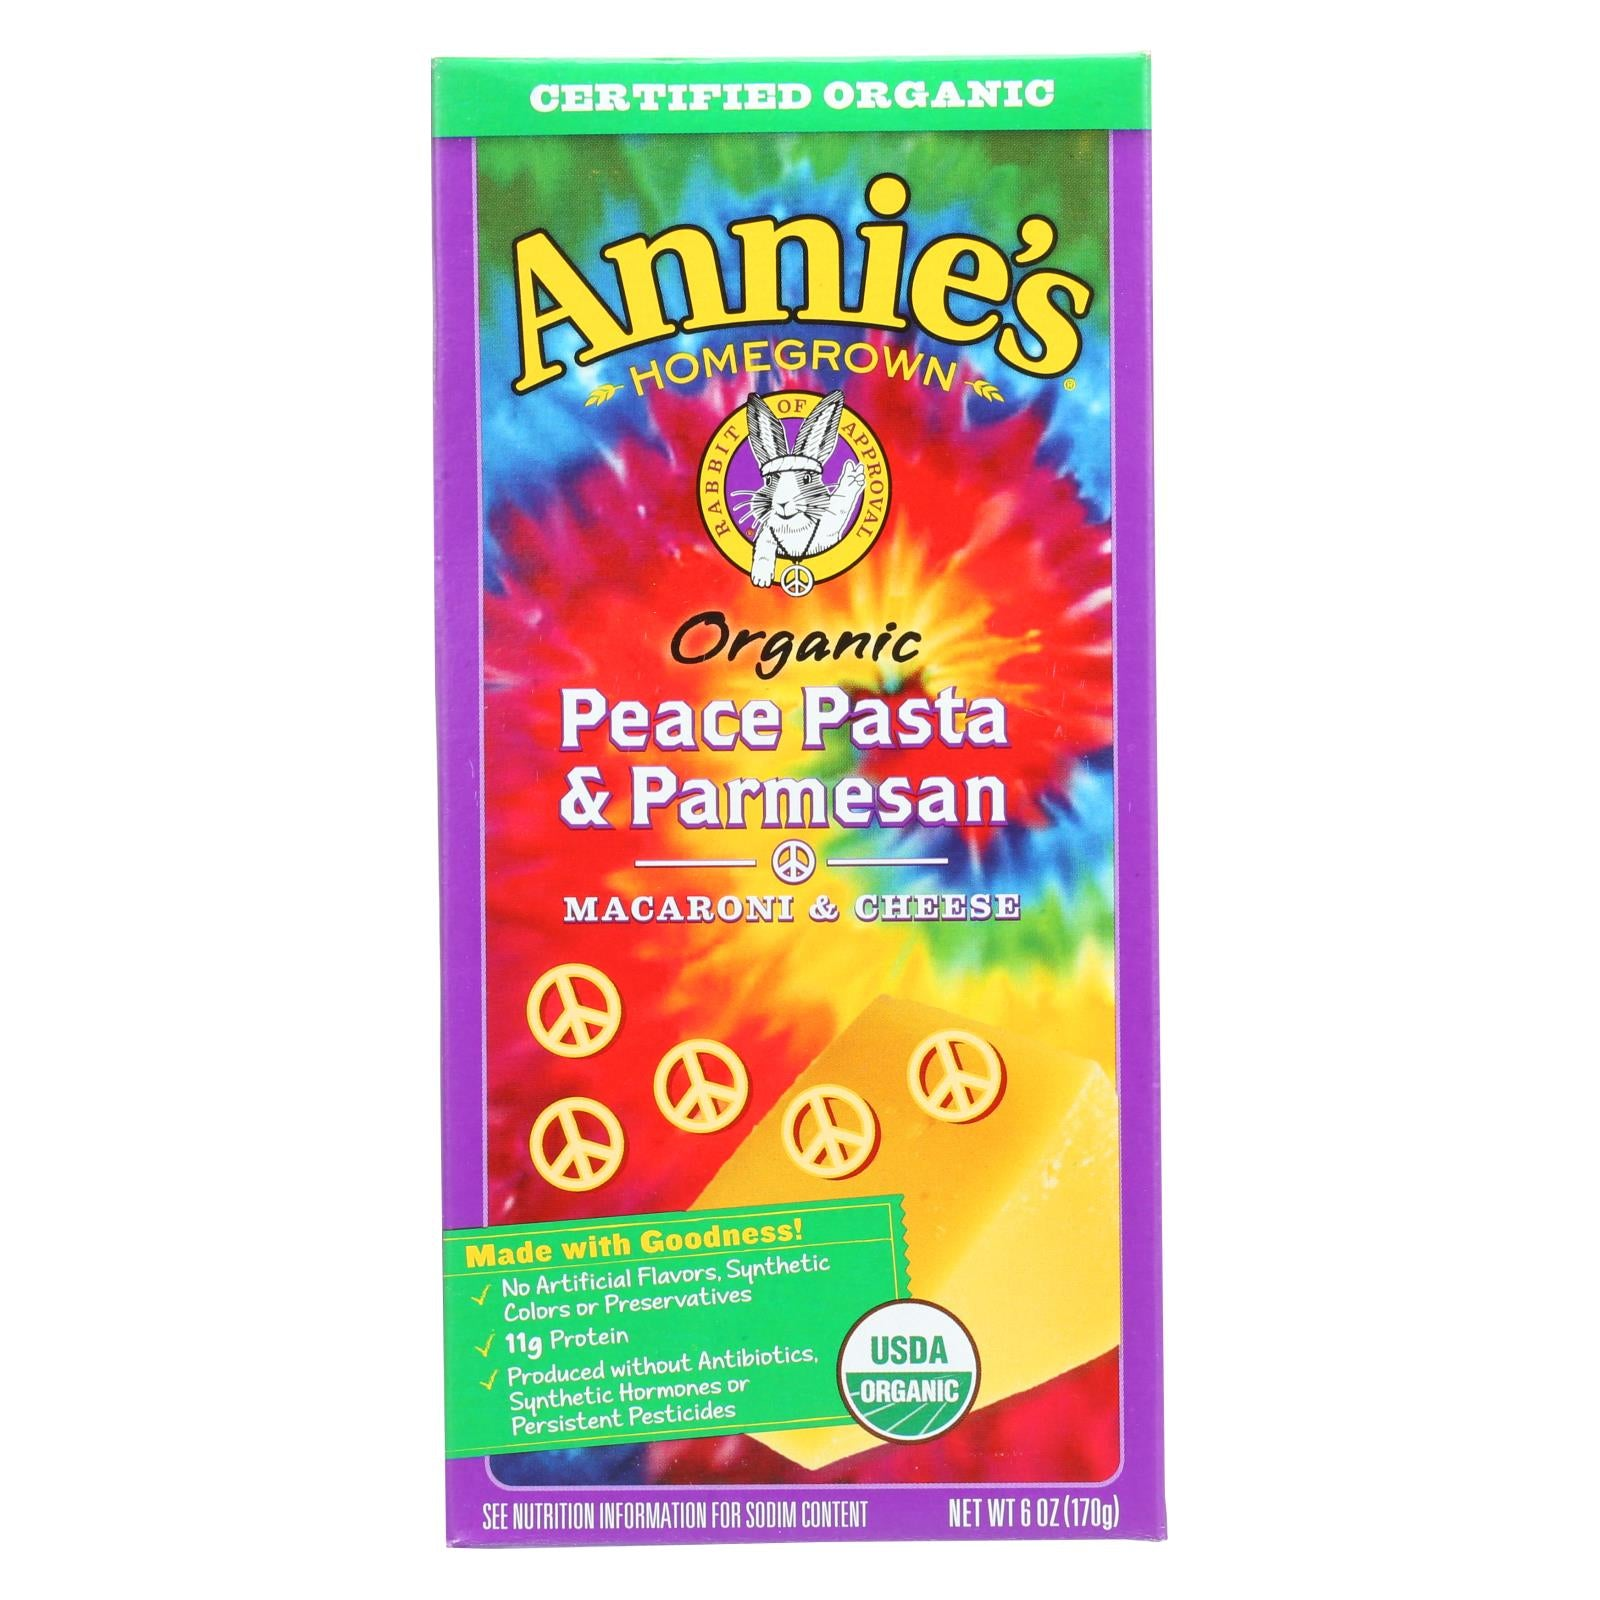 Annies Homegrown Macaroni And Cheese - Organic - Peace Pasta And Parmesan - 6 Oz - Case Of 12 - J. Rose Global